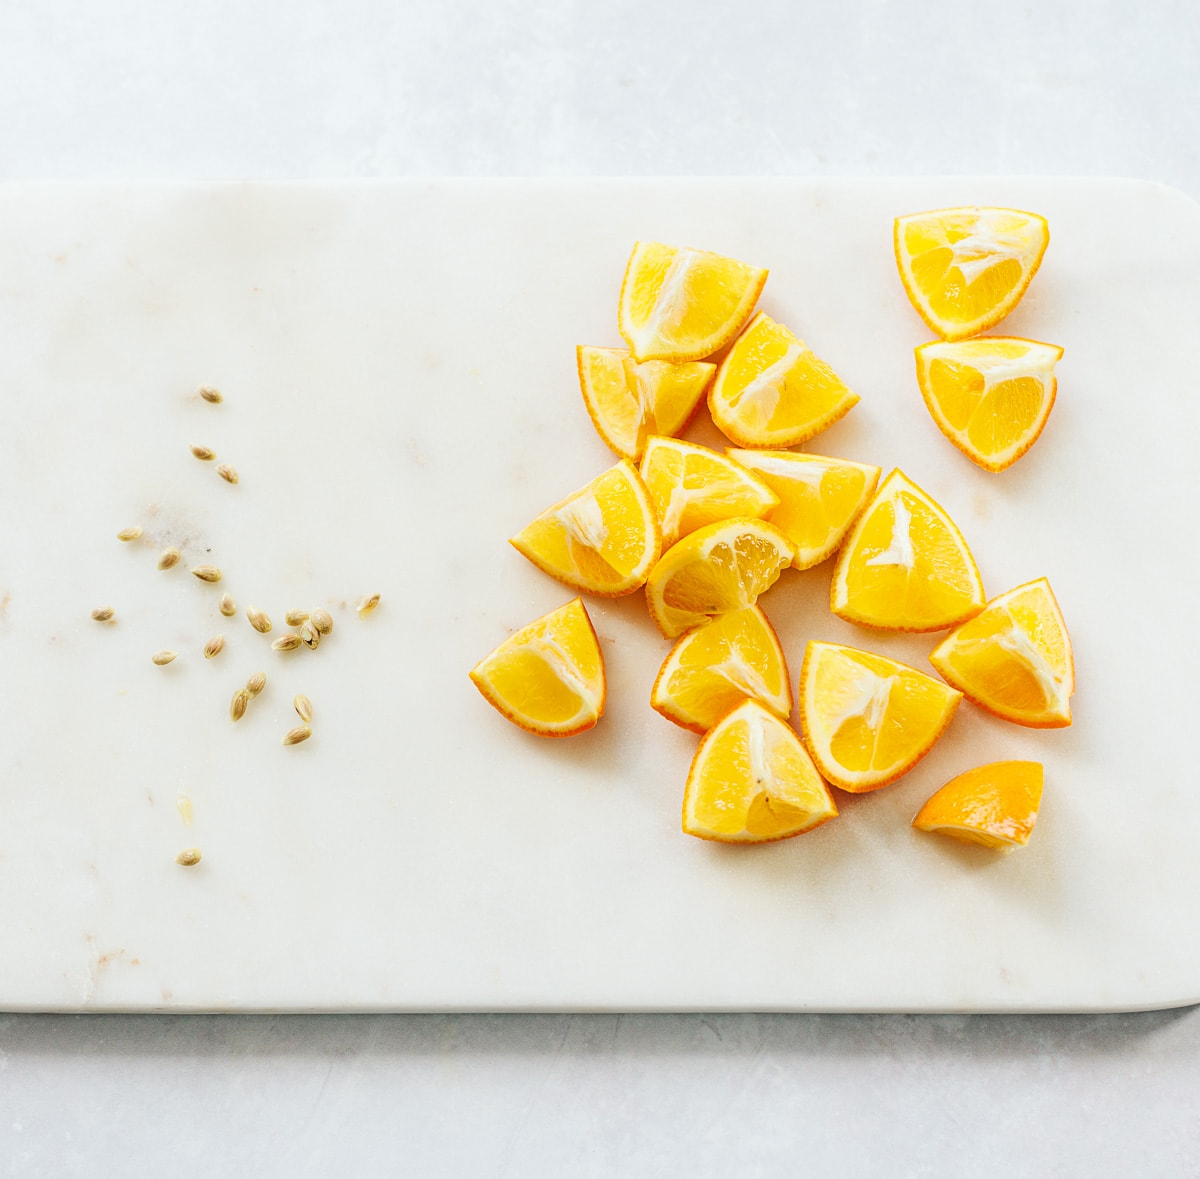 Wedges of Meyer lemon on a marble board, with seeds removed.